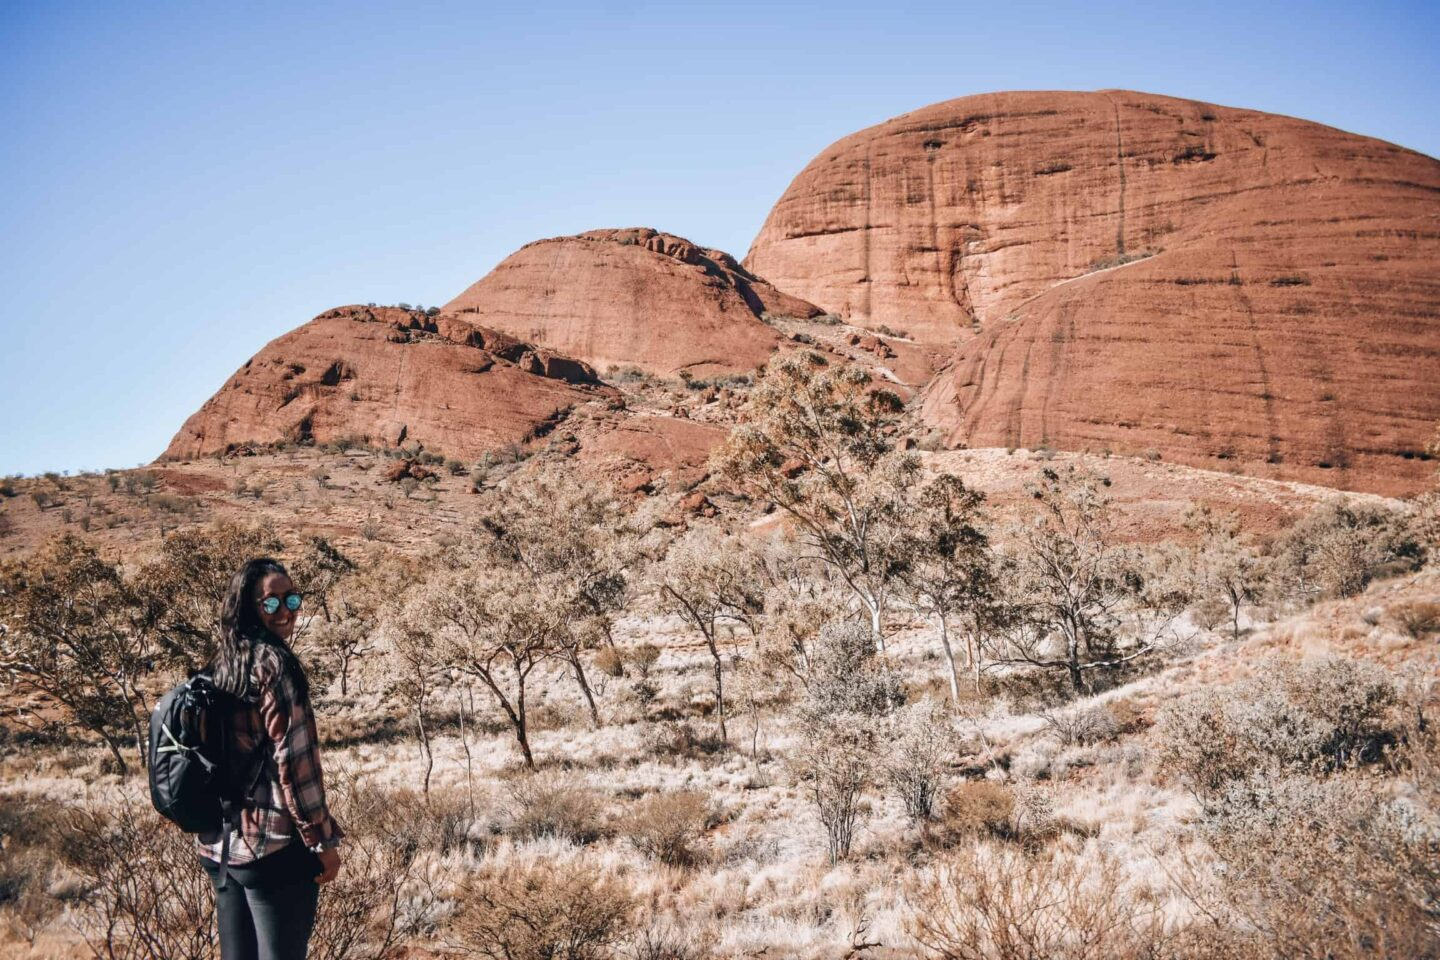 Looking for the perfect tour of Uluru and surroundings? You found it! Find out the best itinerary with the Rock Tours and information about Uluru, Kings Canyon, Kata Tjuta and surroundings. Everything you need to know about the perfect Red Centre itinerary.